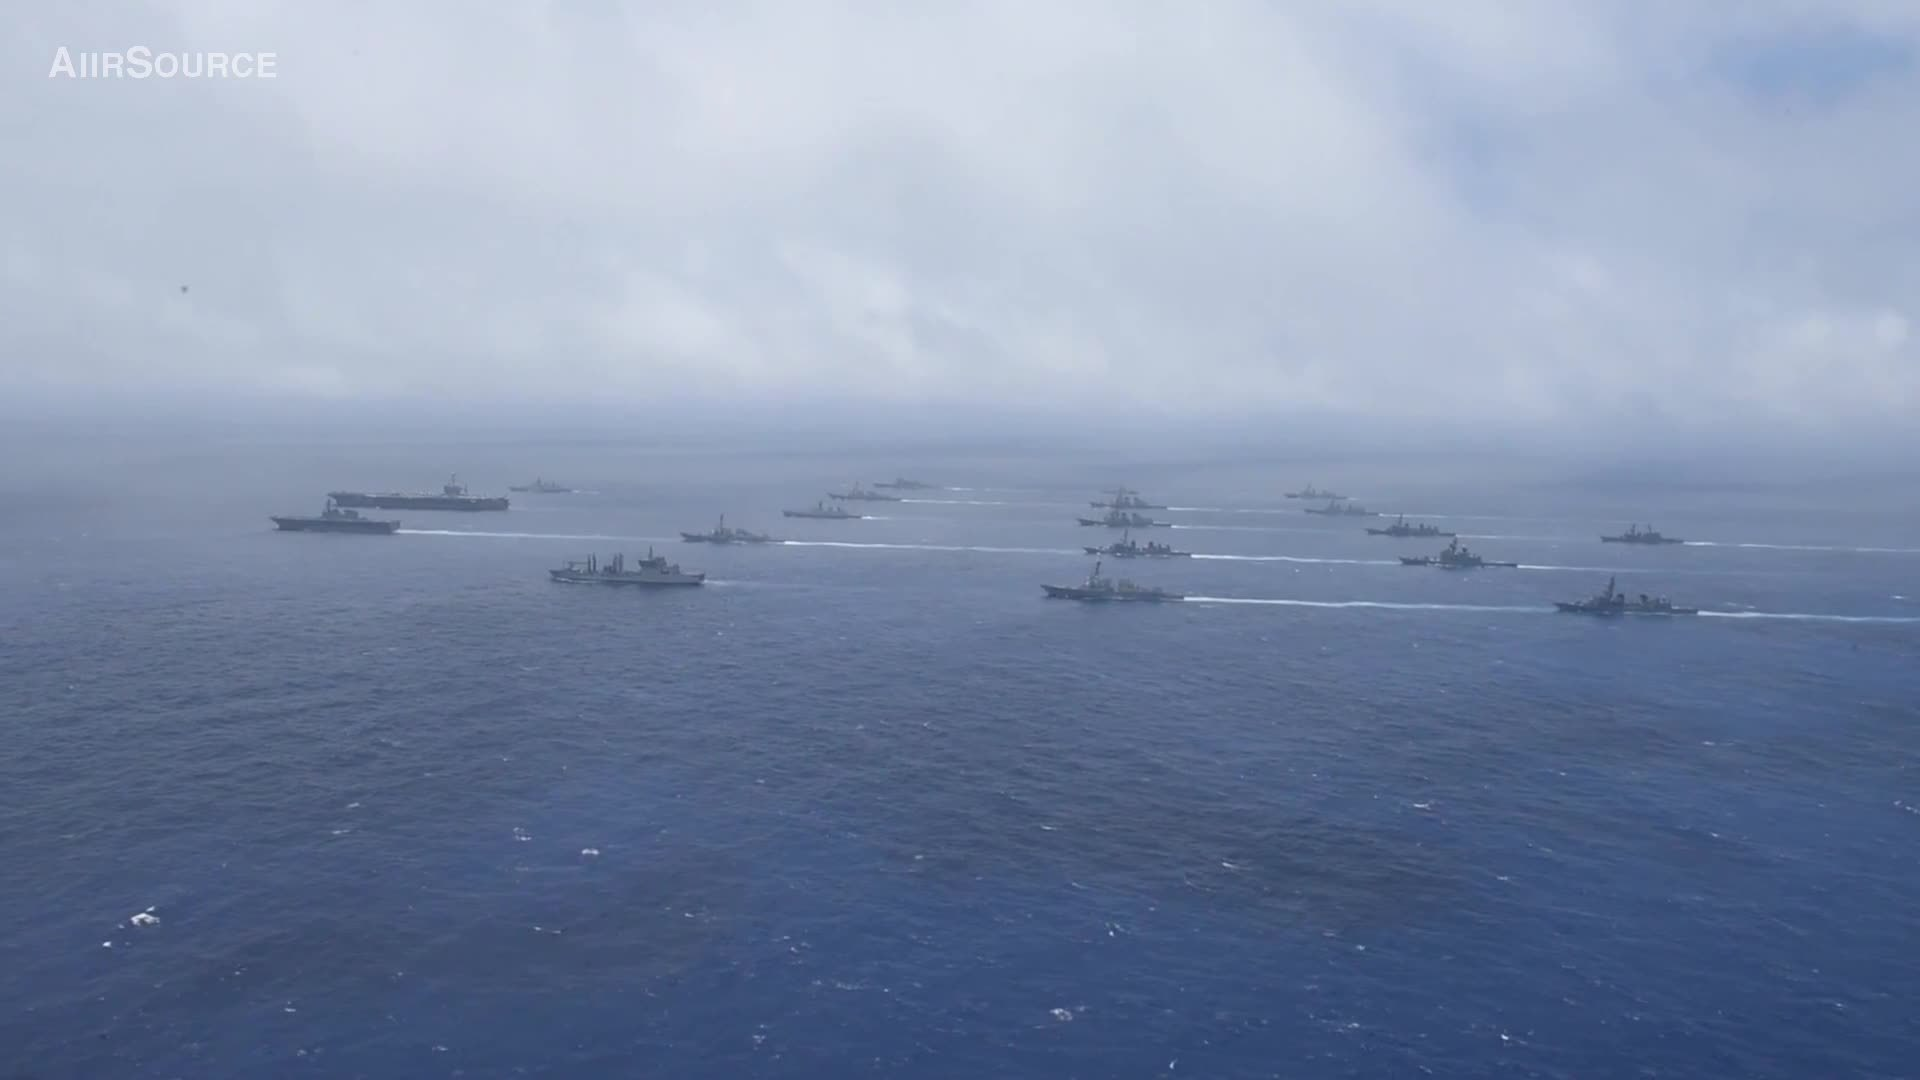 military, military training, militarygfys, US And Allies Show Of Force : Massive Ship Formation In Pacific Ocean GIFs